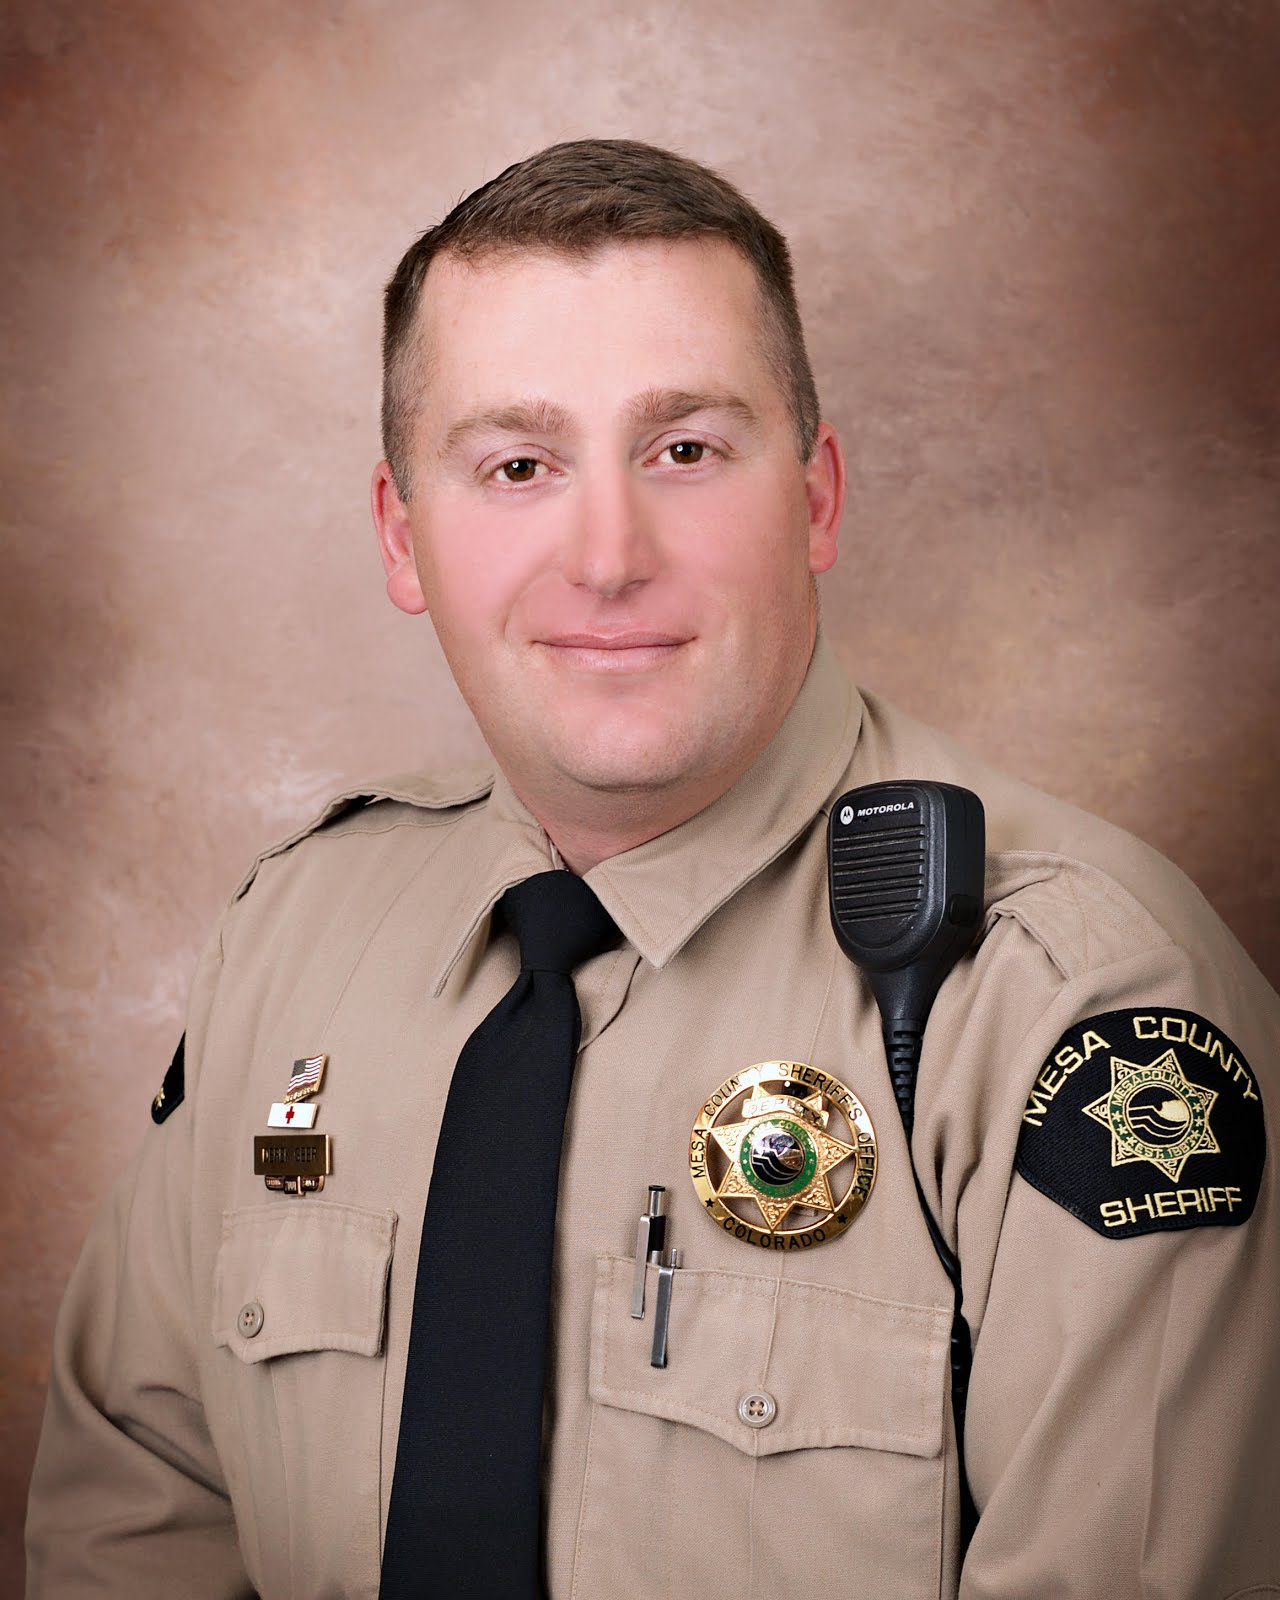 Denver Sheriff Shooting: Colo. Deputy Fighting For His Life After Being Shot